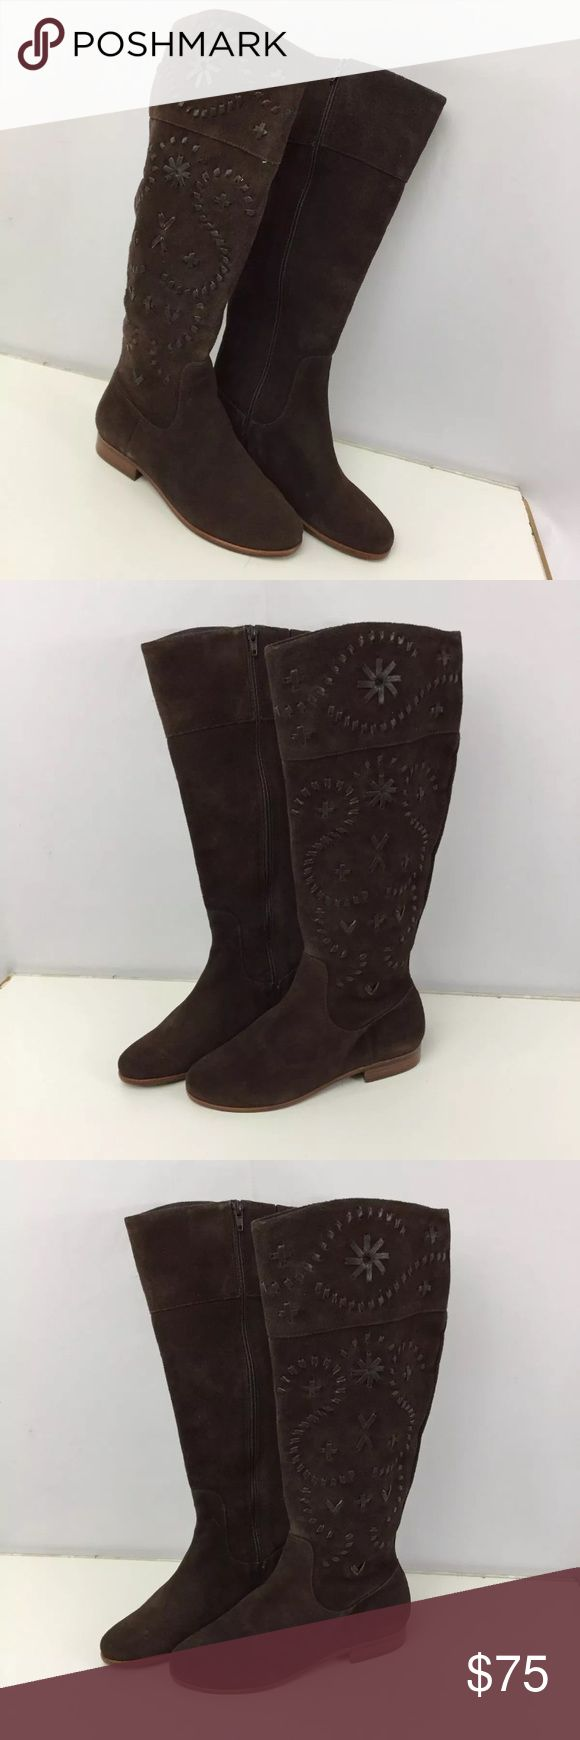 Jack Rogers 6.5 Brown Tall Boots Leather Stitching Jack Rogers 6.5 6 1/2 Brown Tall Boots Leather Stitching Embroidery Zip Up. Brand New. Smoke free home. Jack Rogers Shoes Heeled Boots